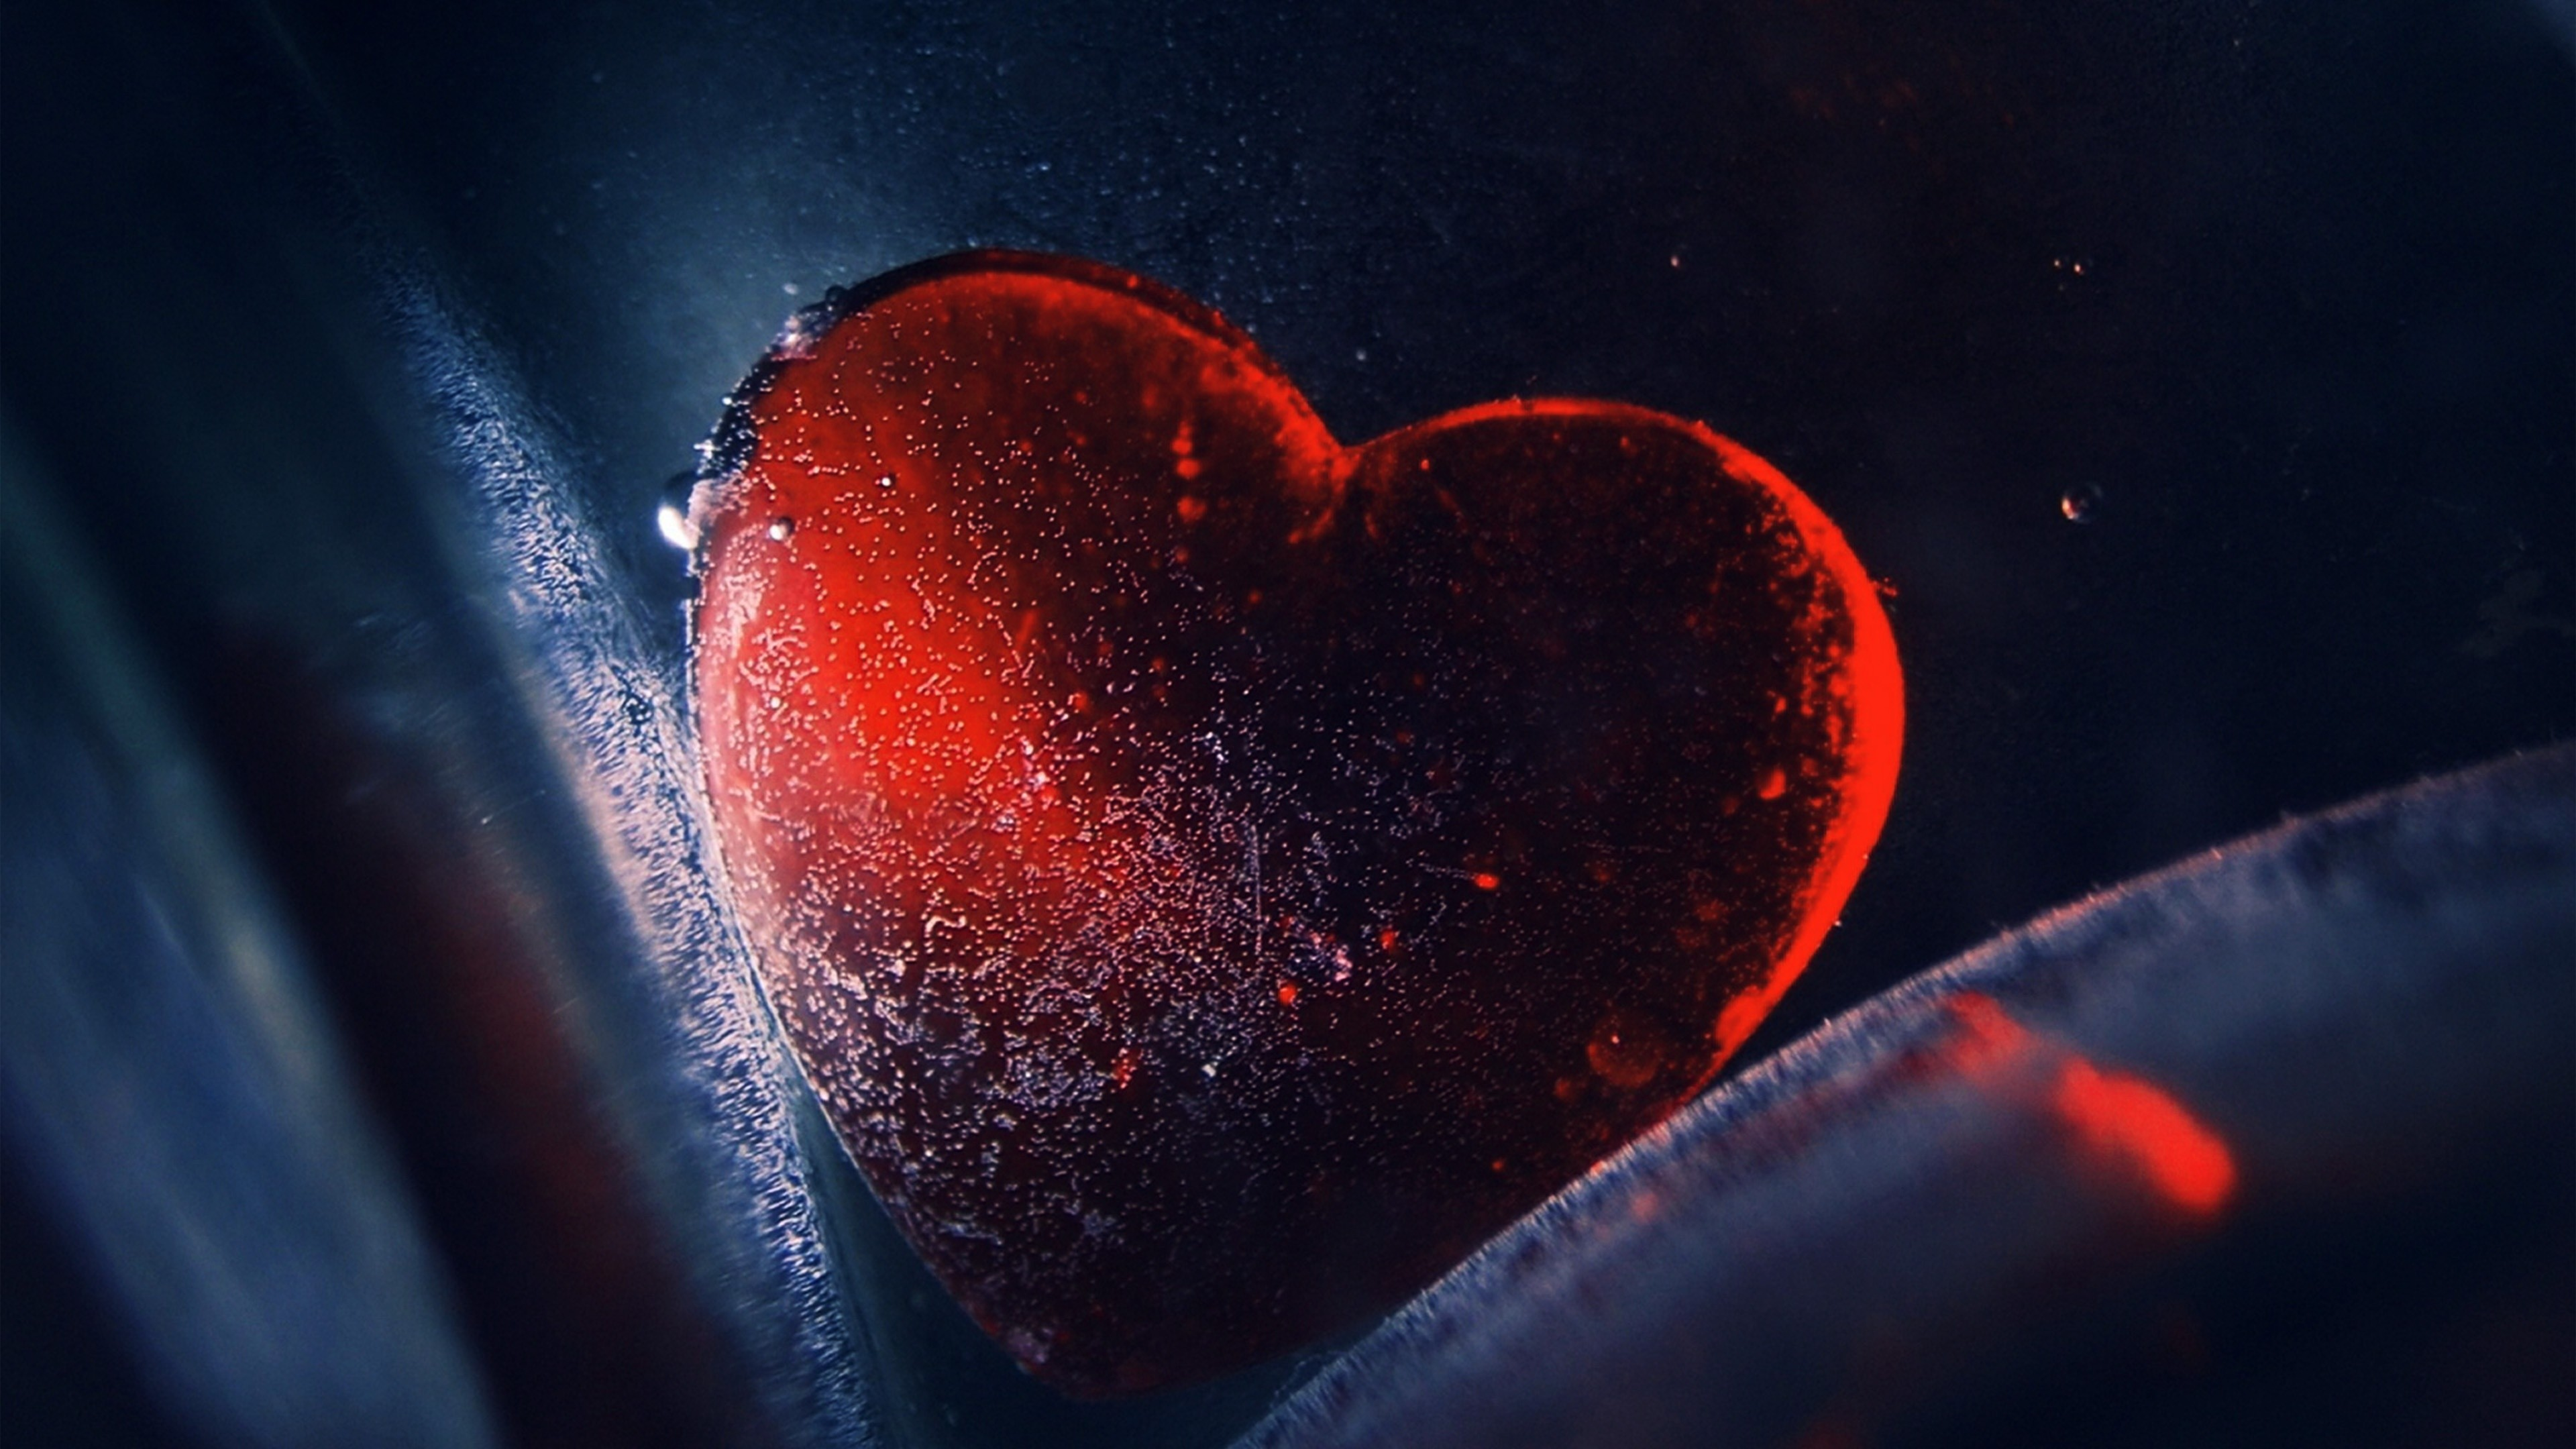 63 Red Heart Wallpapers on WallpaperPlay 3840x2160